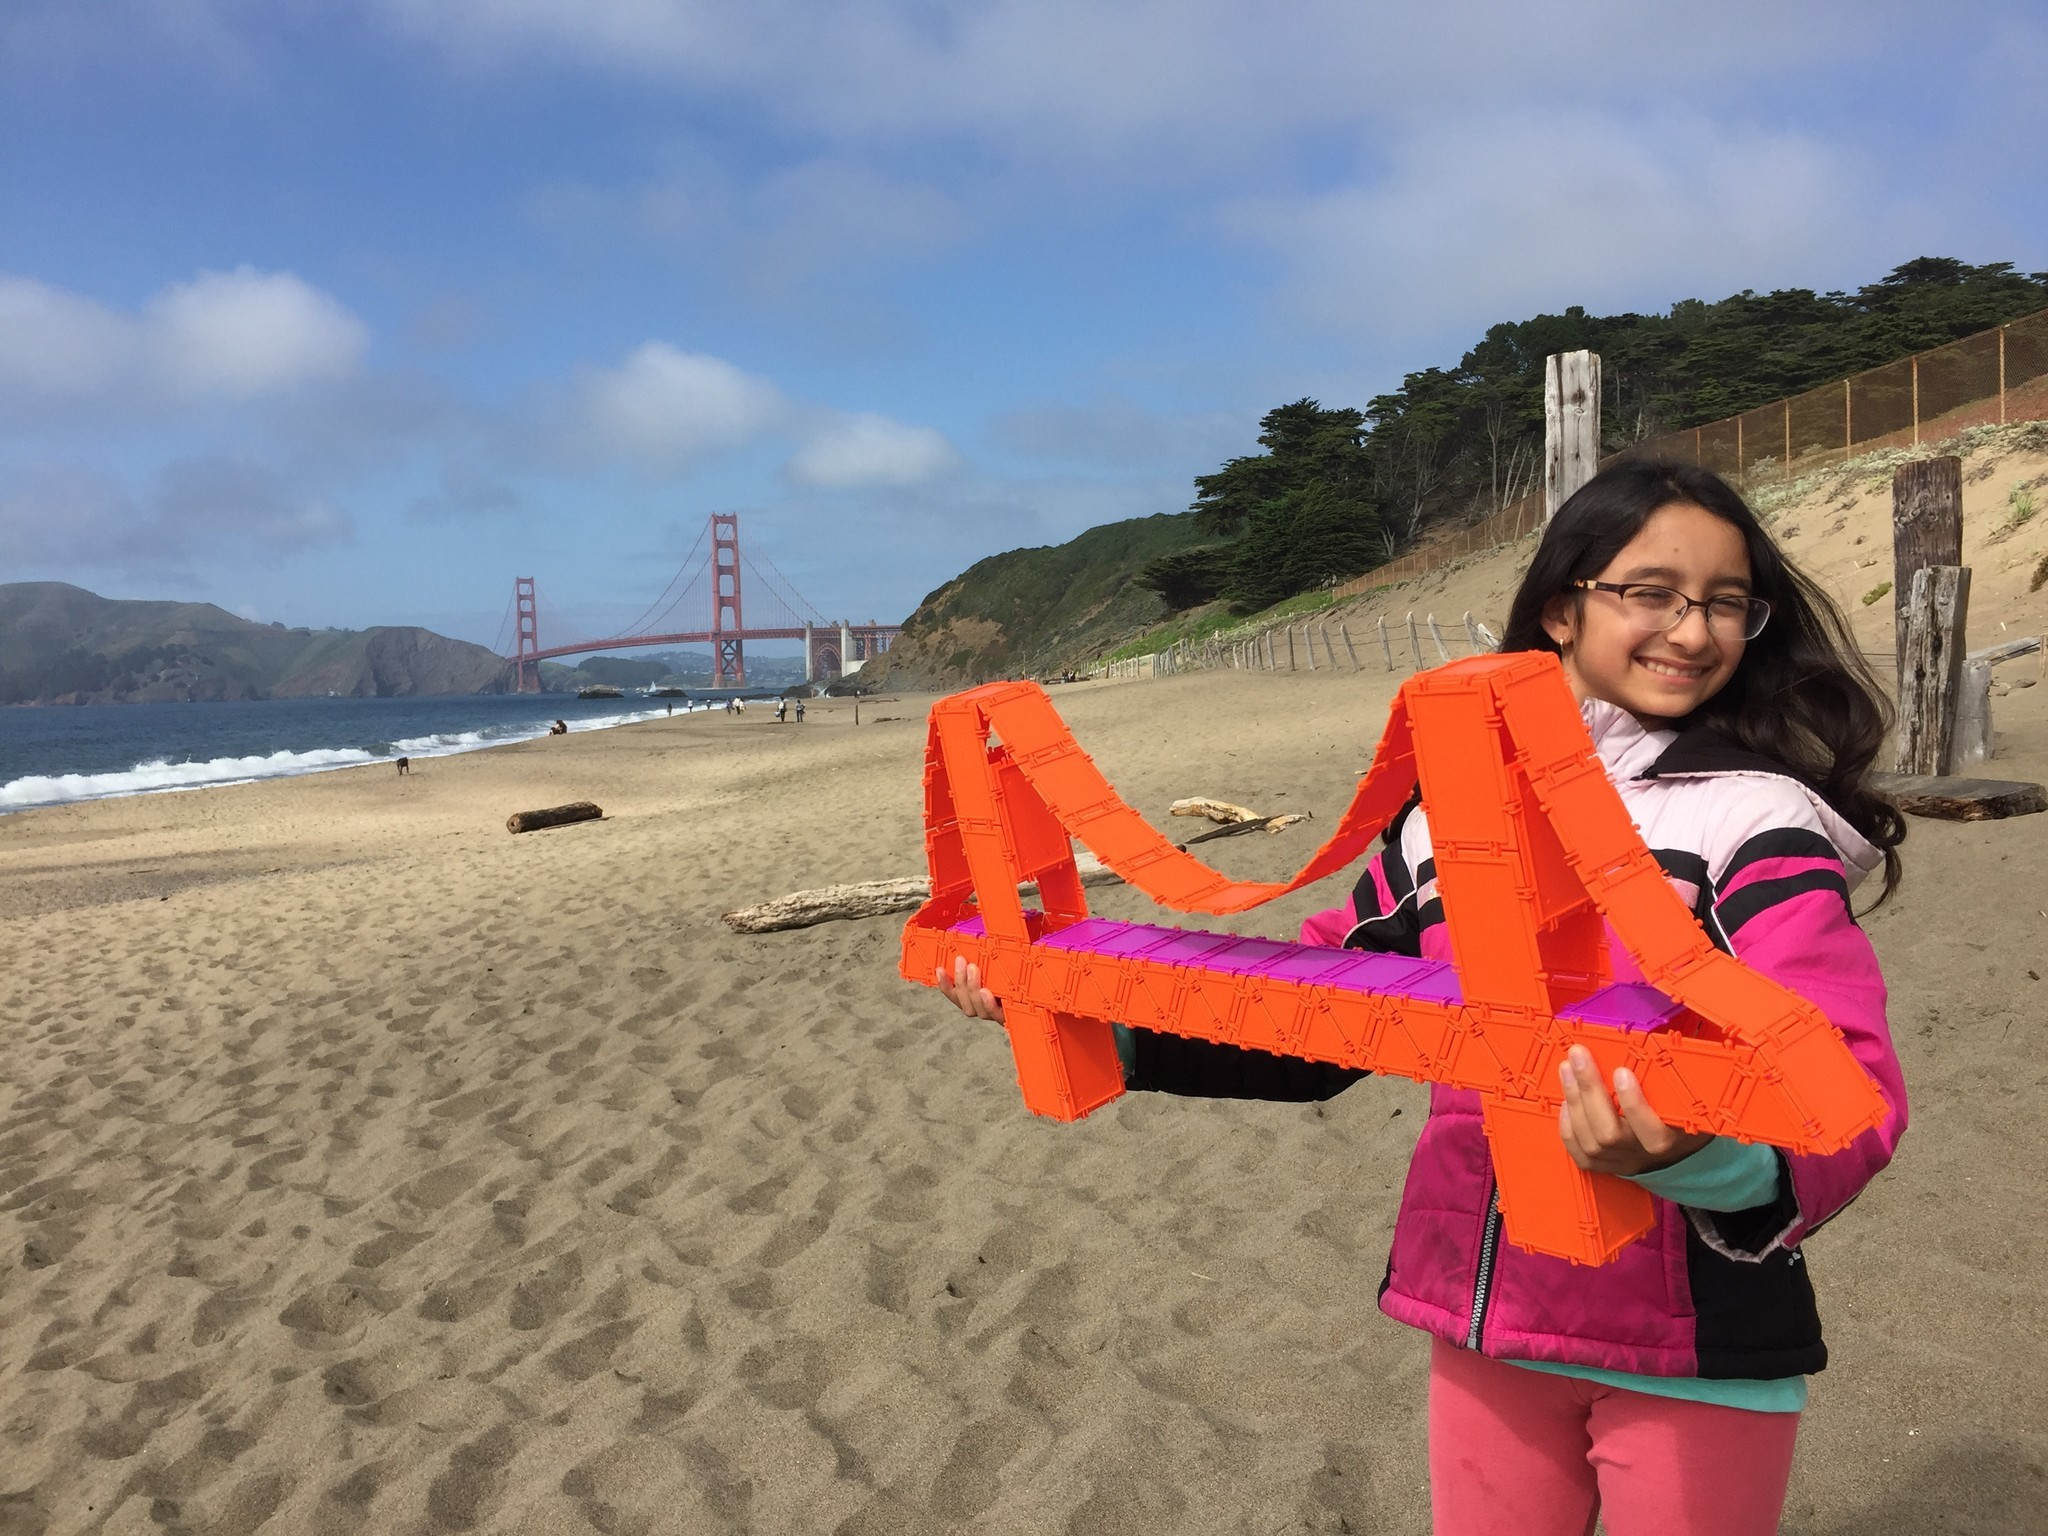 Yana Mohanty's daughter Nina shows off a Golden Gate Bridge made of Geometiles.